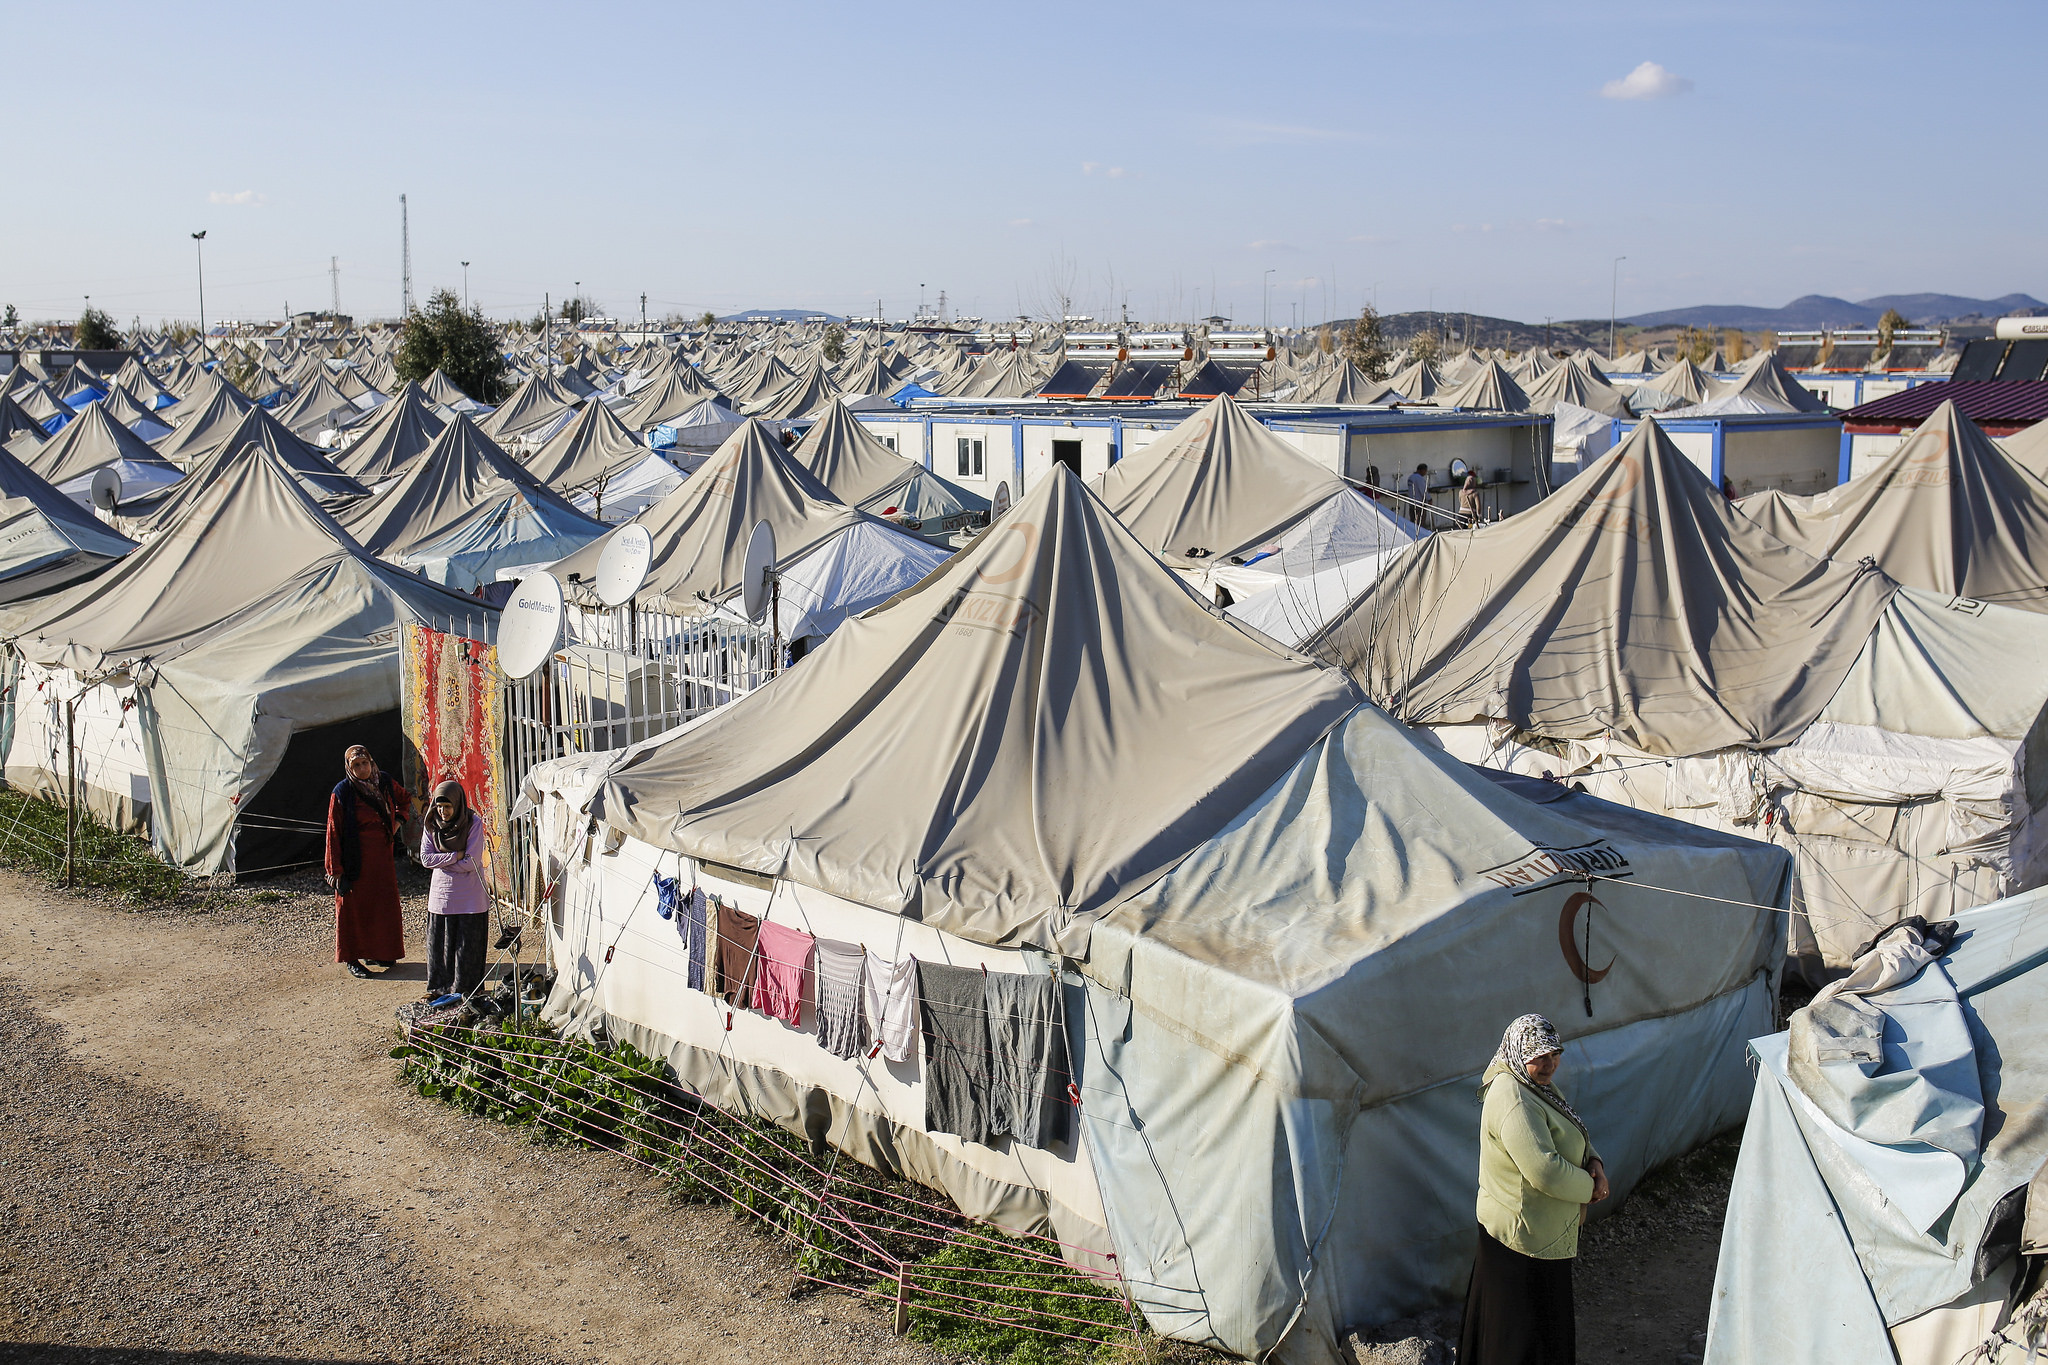 Un camp de réfugiés en Turquie en 2016.(Photo Flickr/ European Parliament)